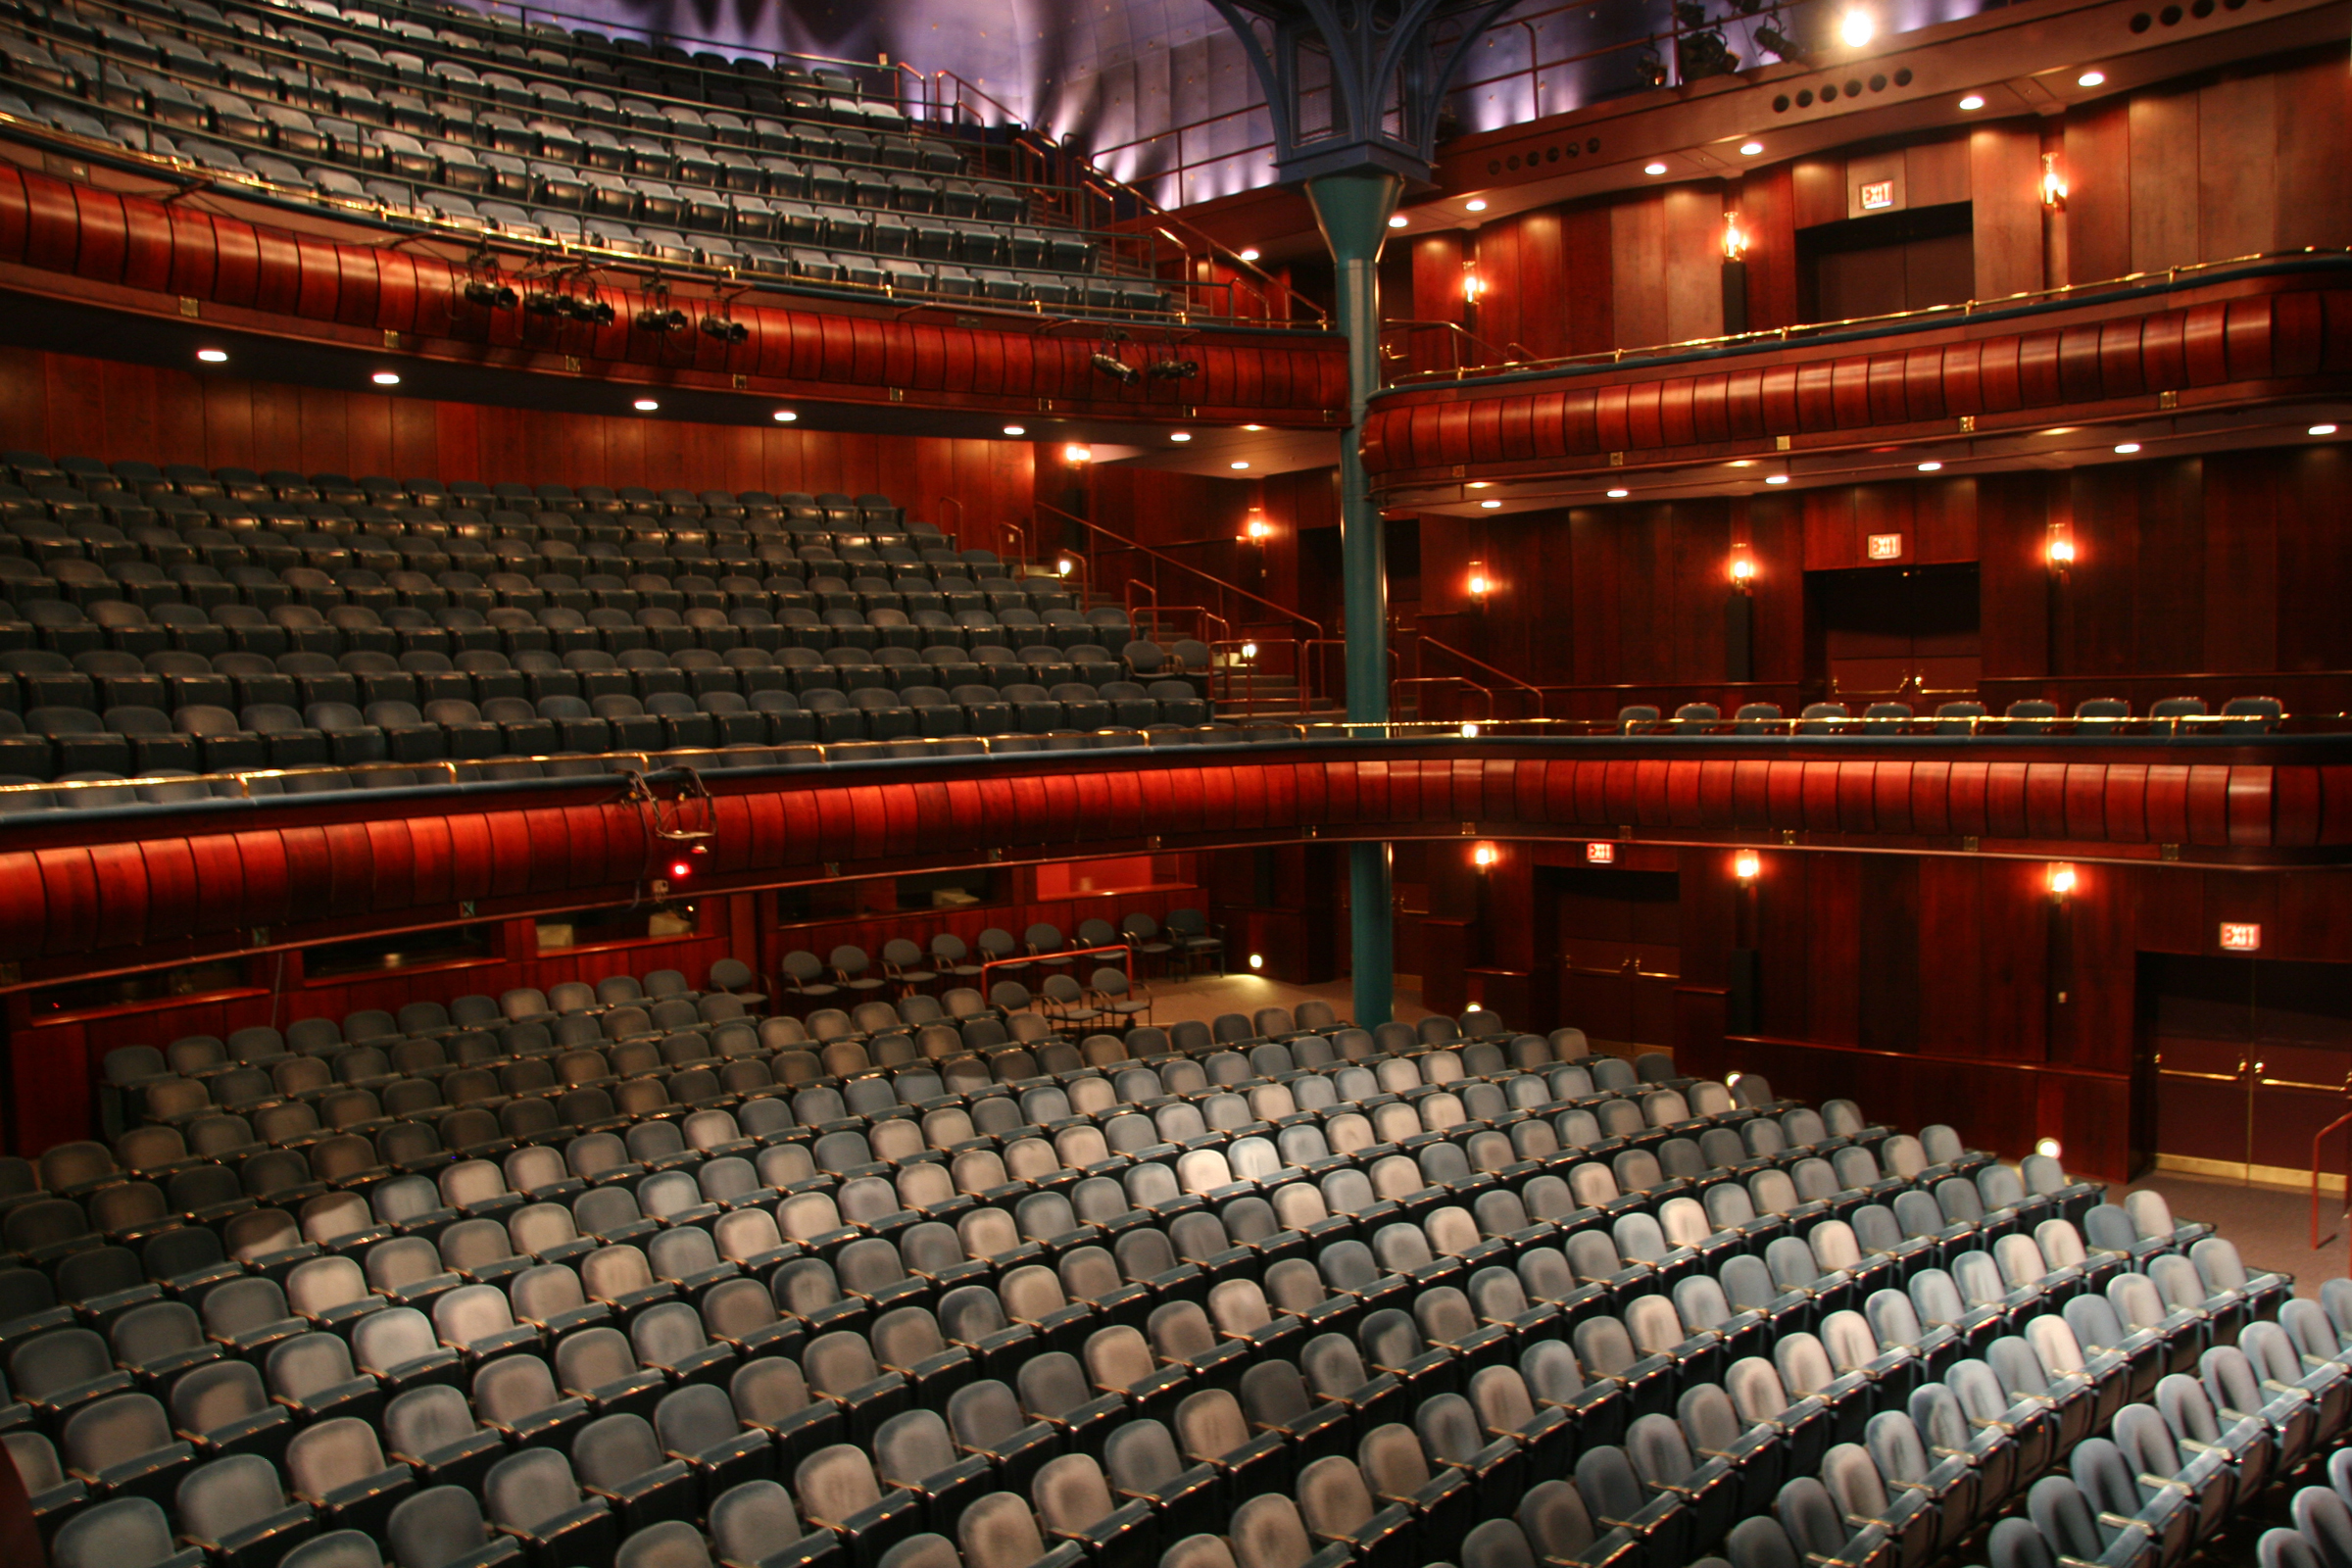 Newmark Theatre Photos